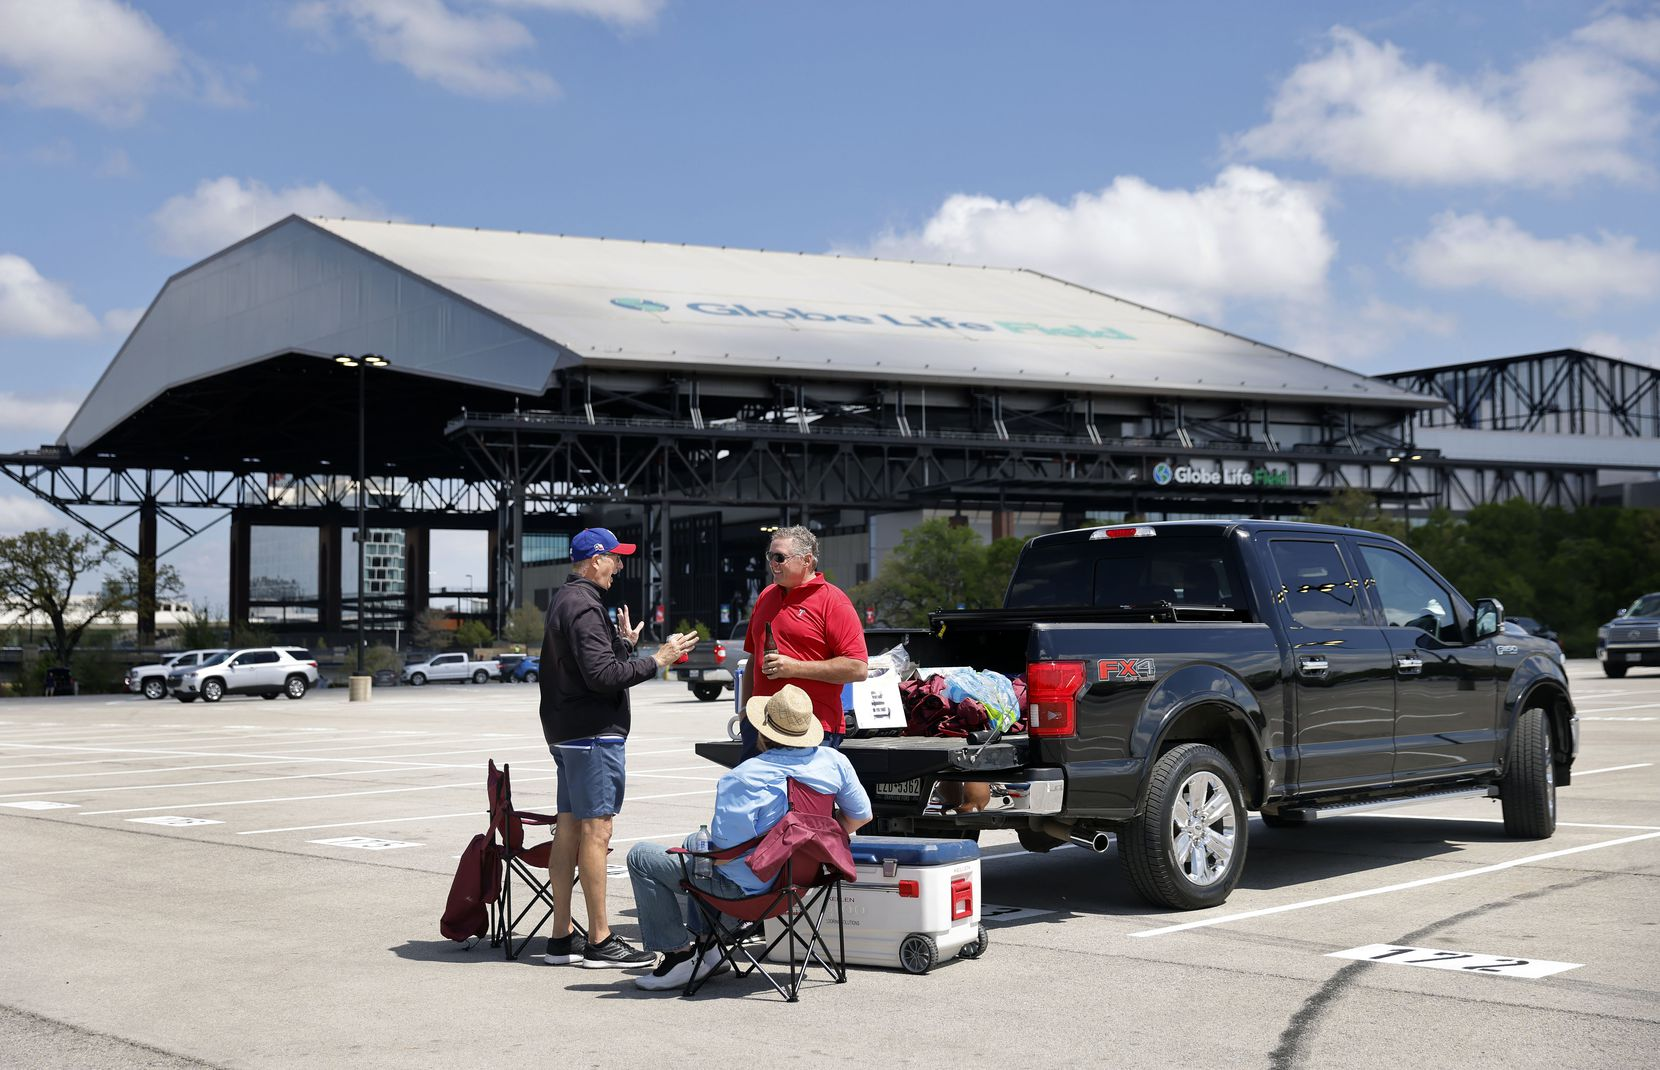 Texas Rangers fans enjoy an Opening Day tailgate party outside of Globe Life Field in Arlington, Monday, April 5, 2021. The Rangers are facing the Toronto Blue Jays in the home opener. (Tom Fox/The Dallas Morning News)